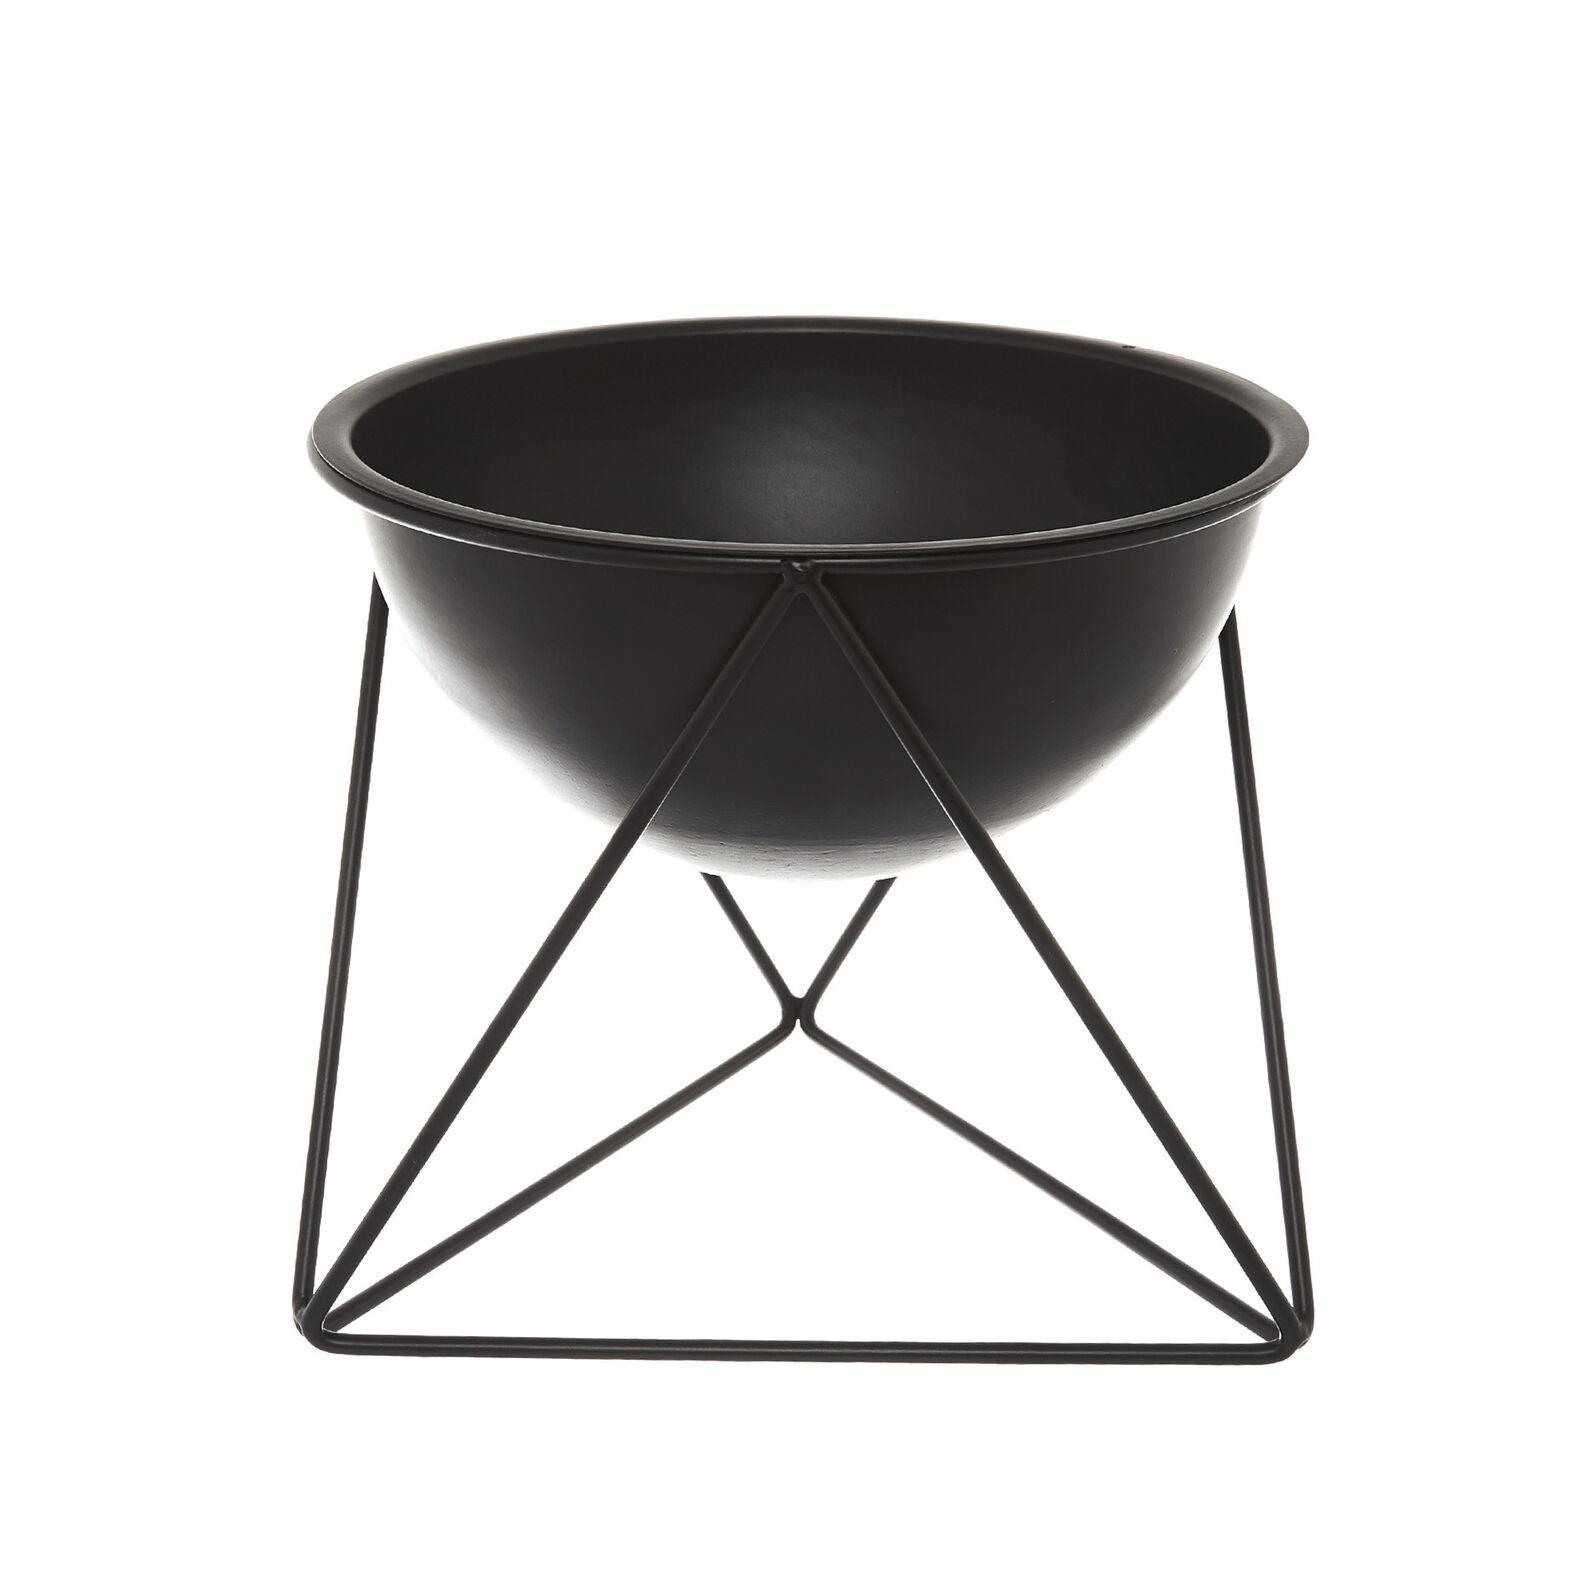 Metal bowl with stand